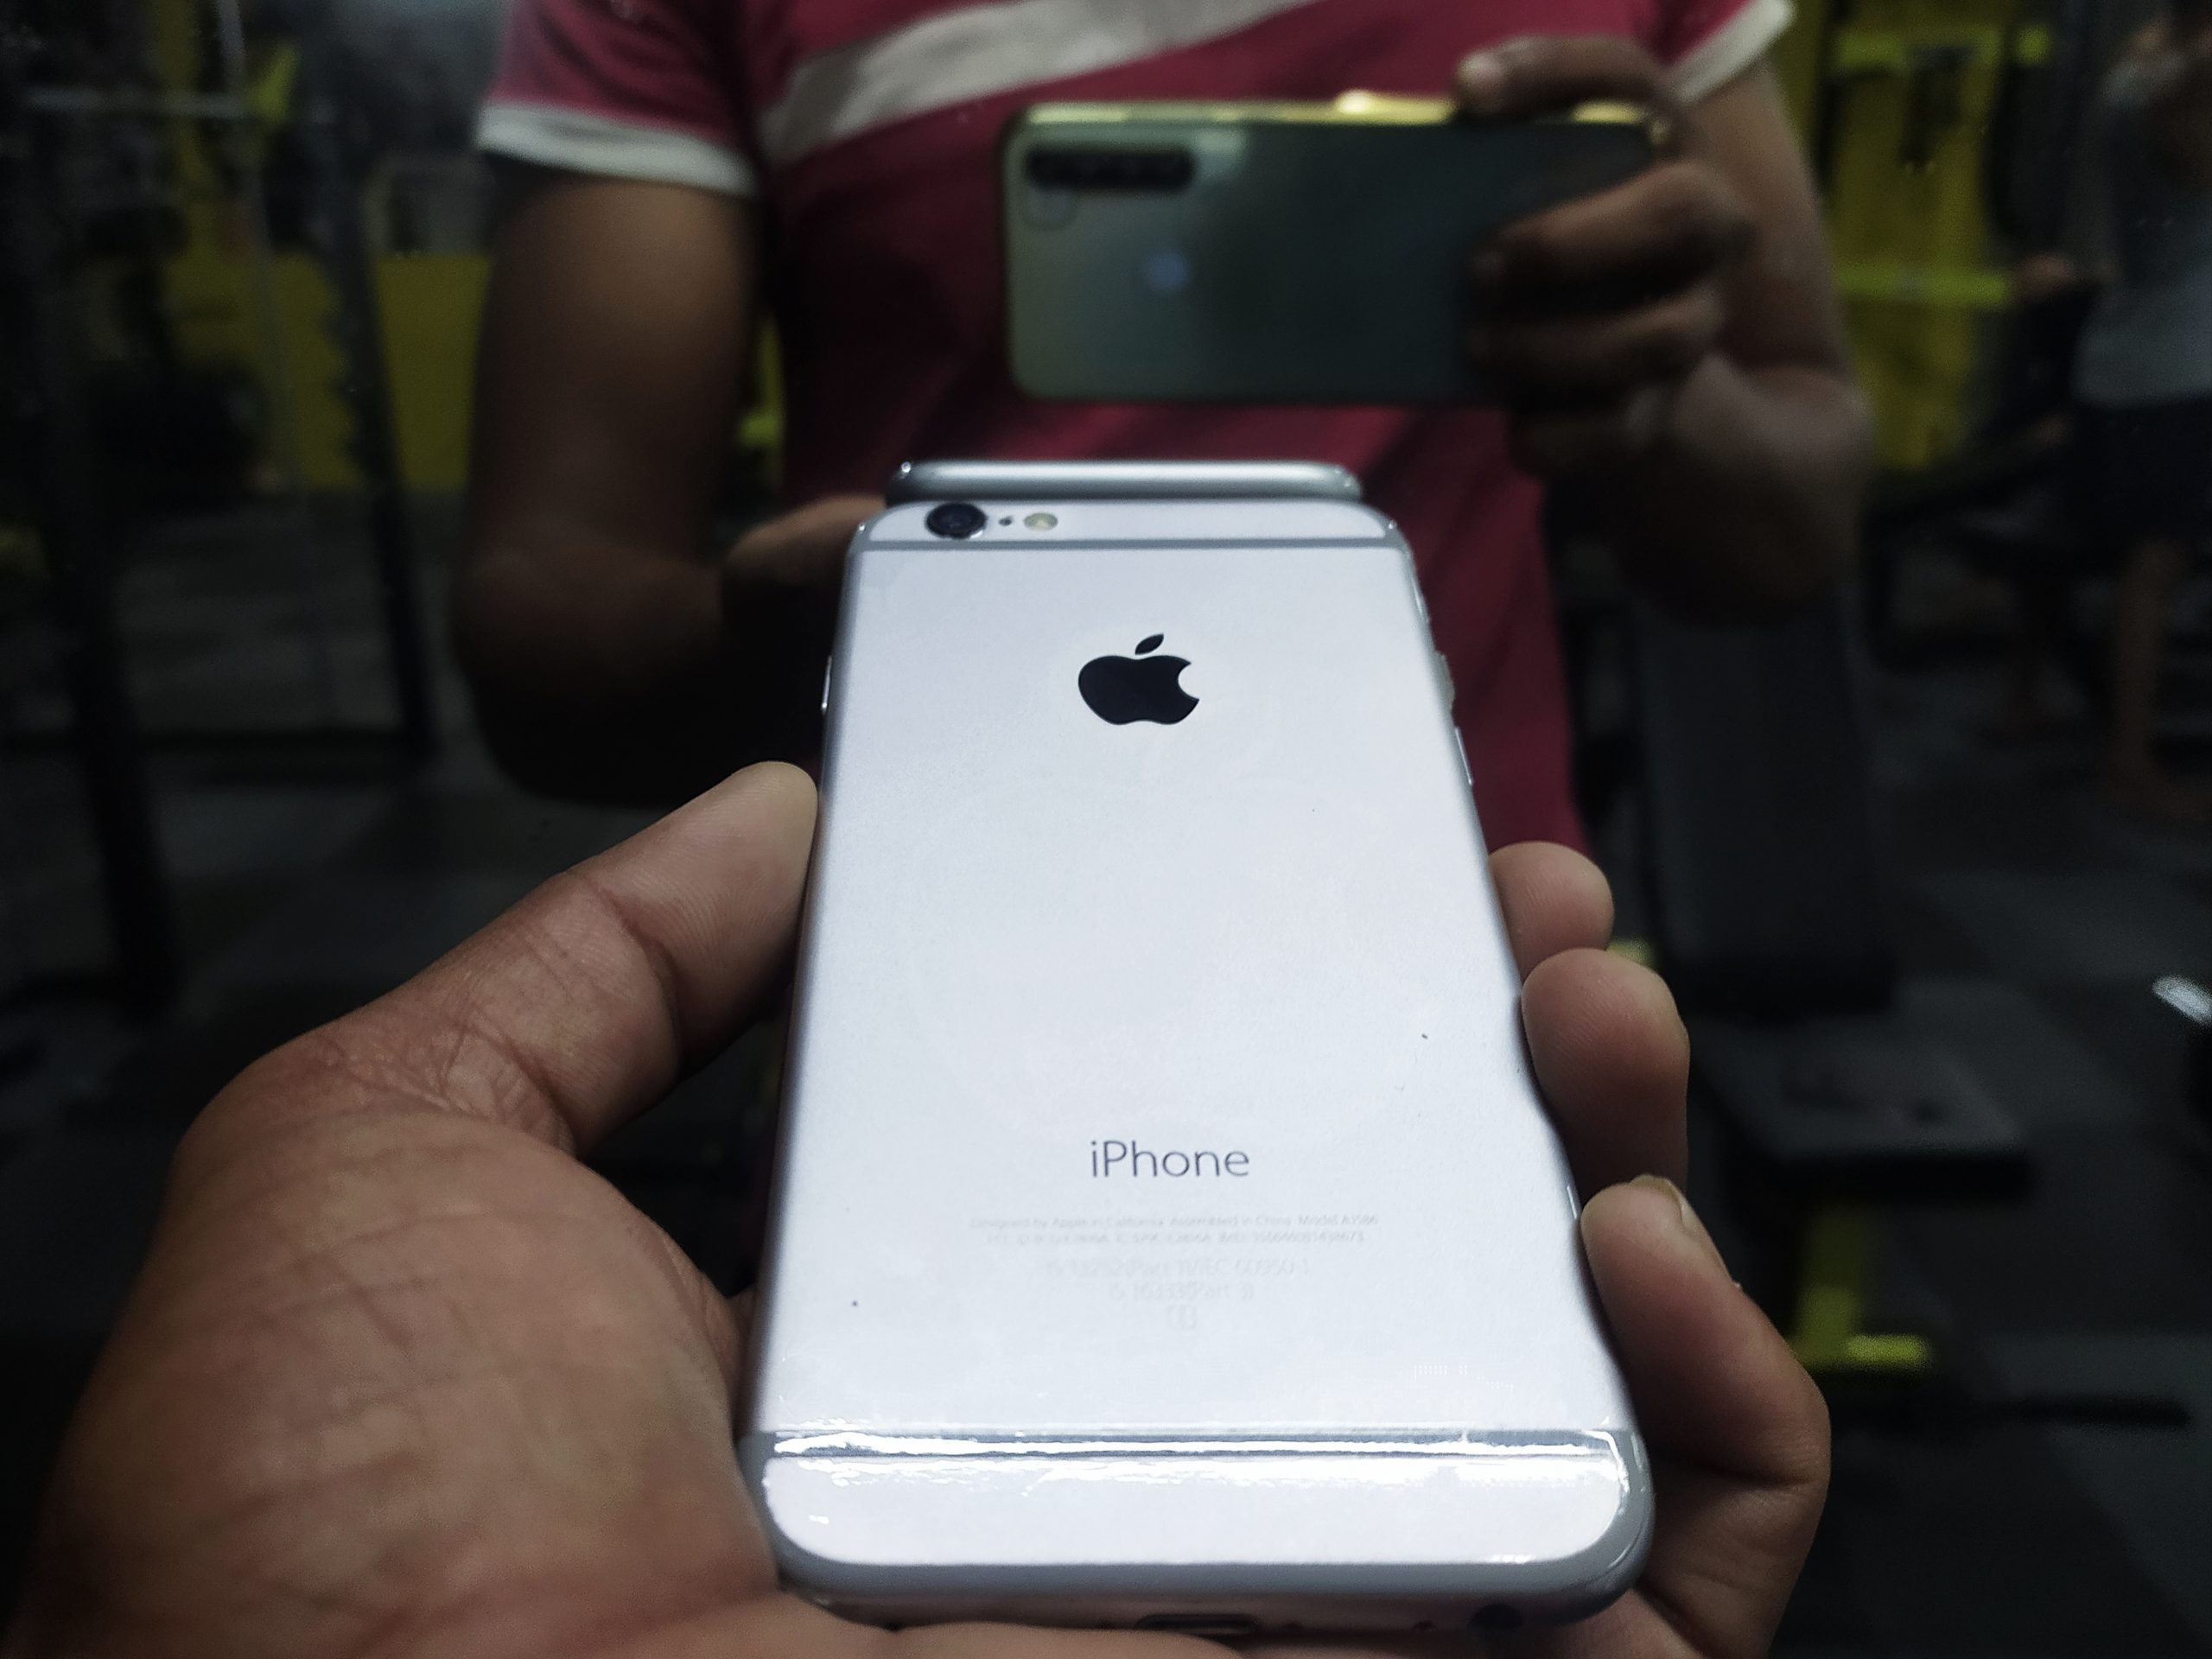 An iPhone in hand